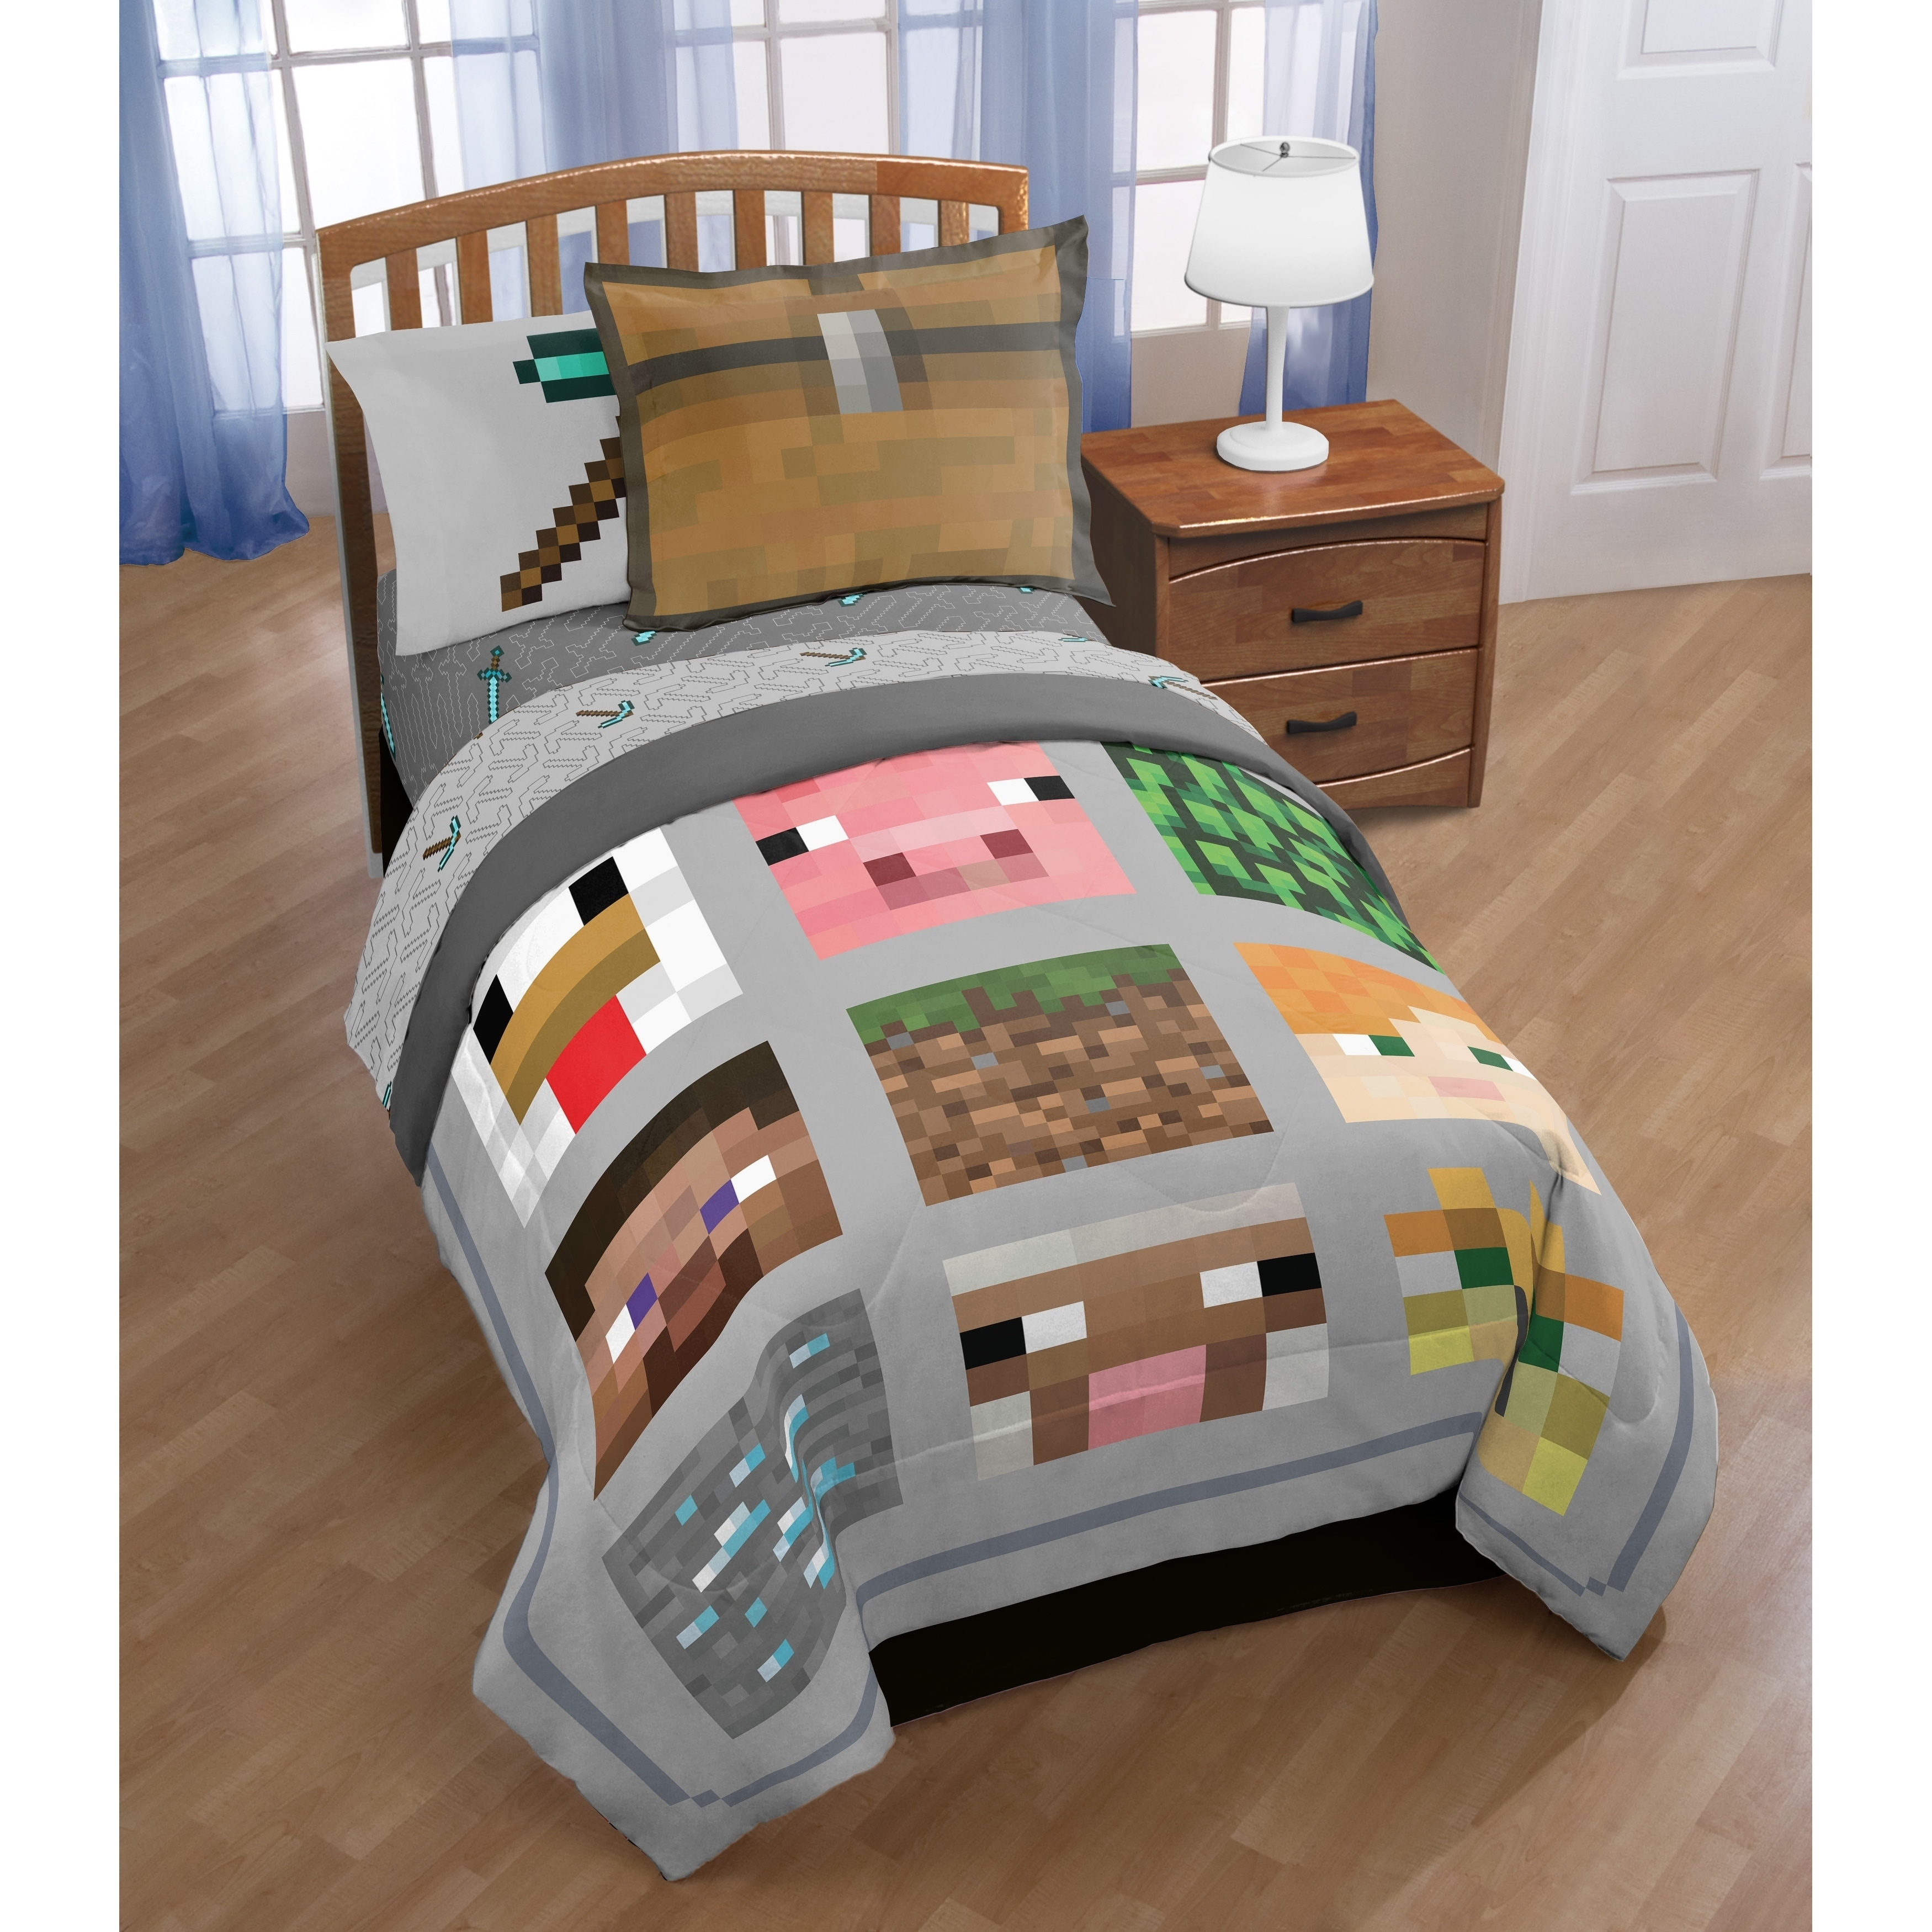 4 Piece Bed Set NEW Minecraft Red TWIN Comforter Set Bedding Includes Sheets